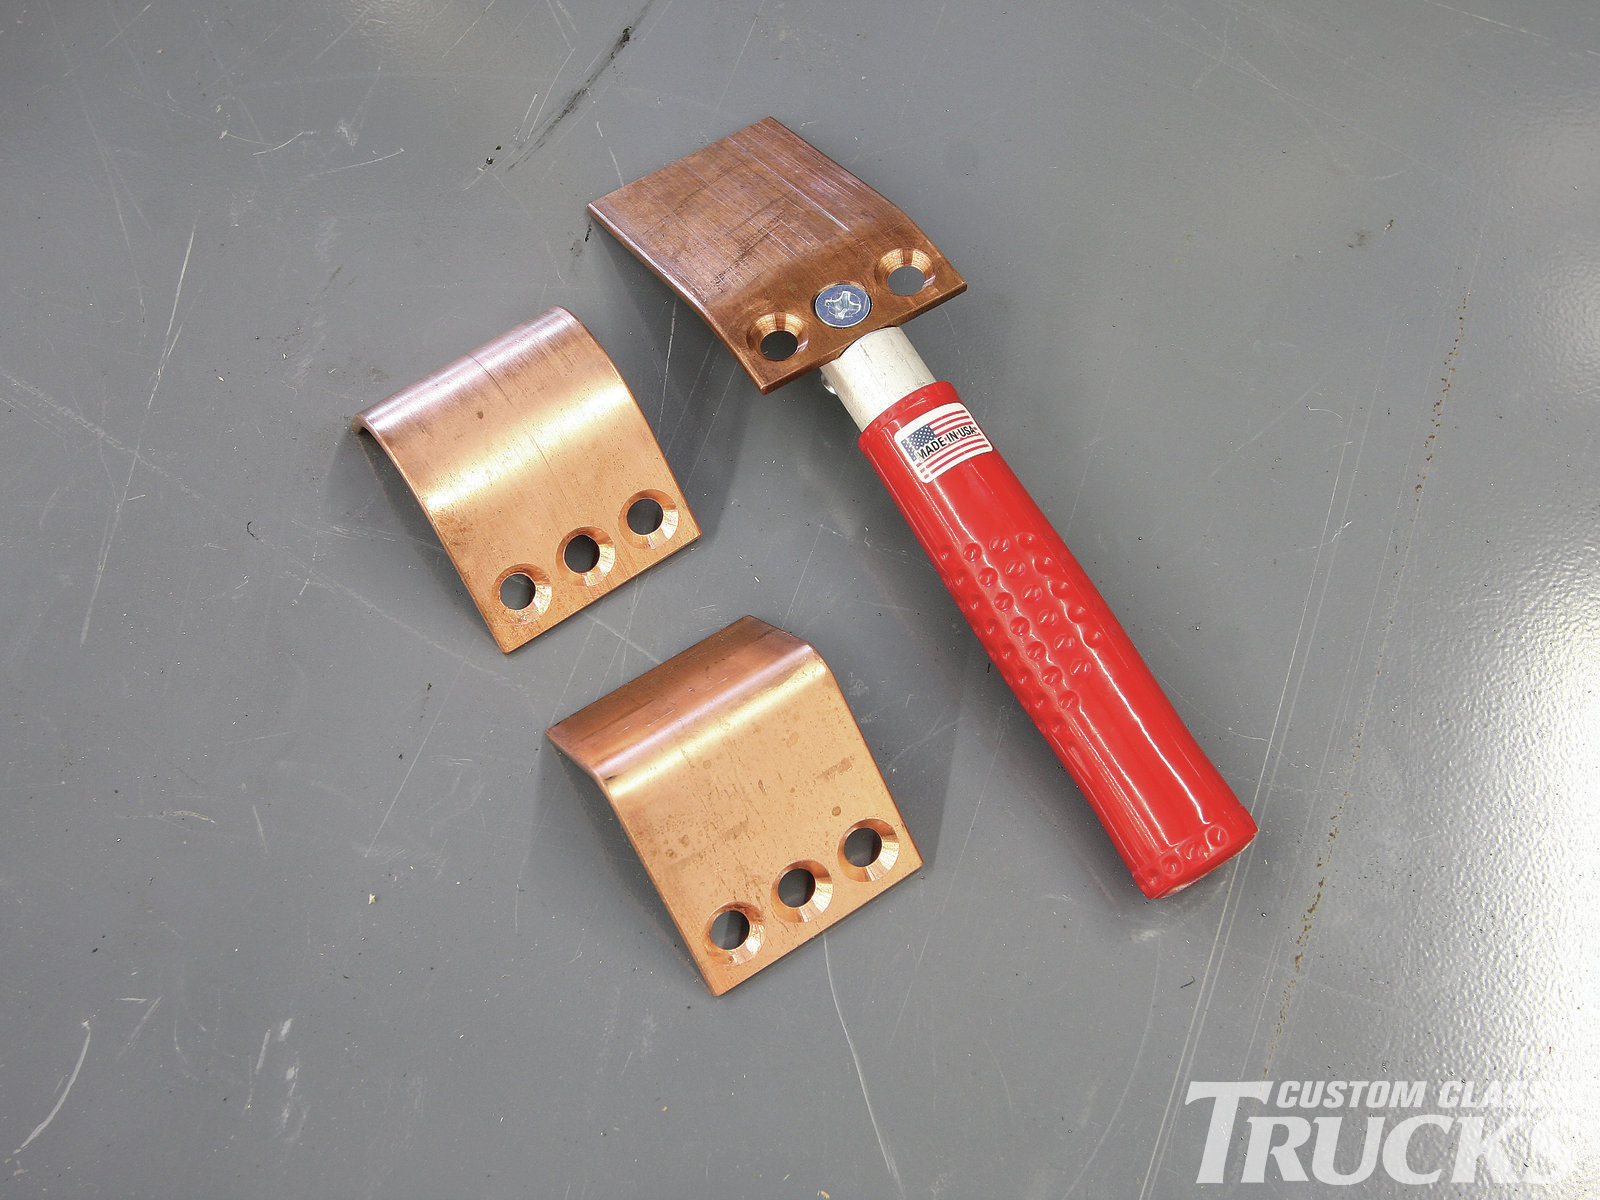 12. The copper acts as a backing support for the weld and the weld doesn't stick to the copper.